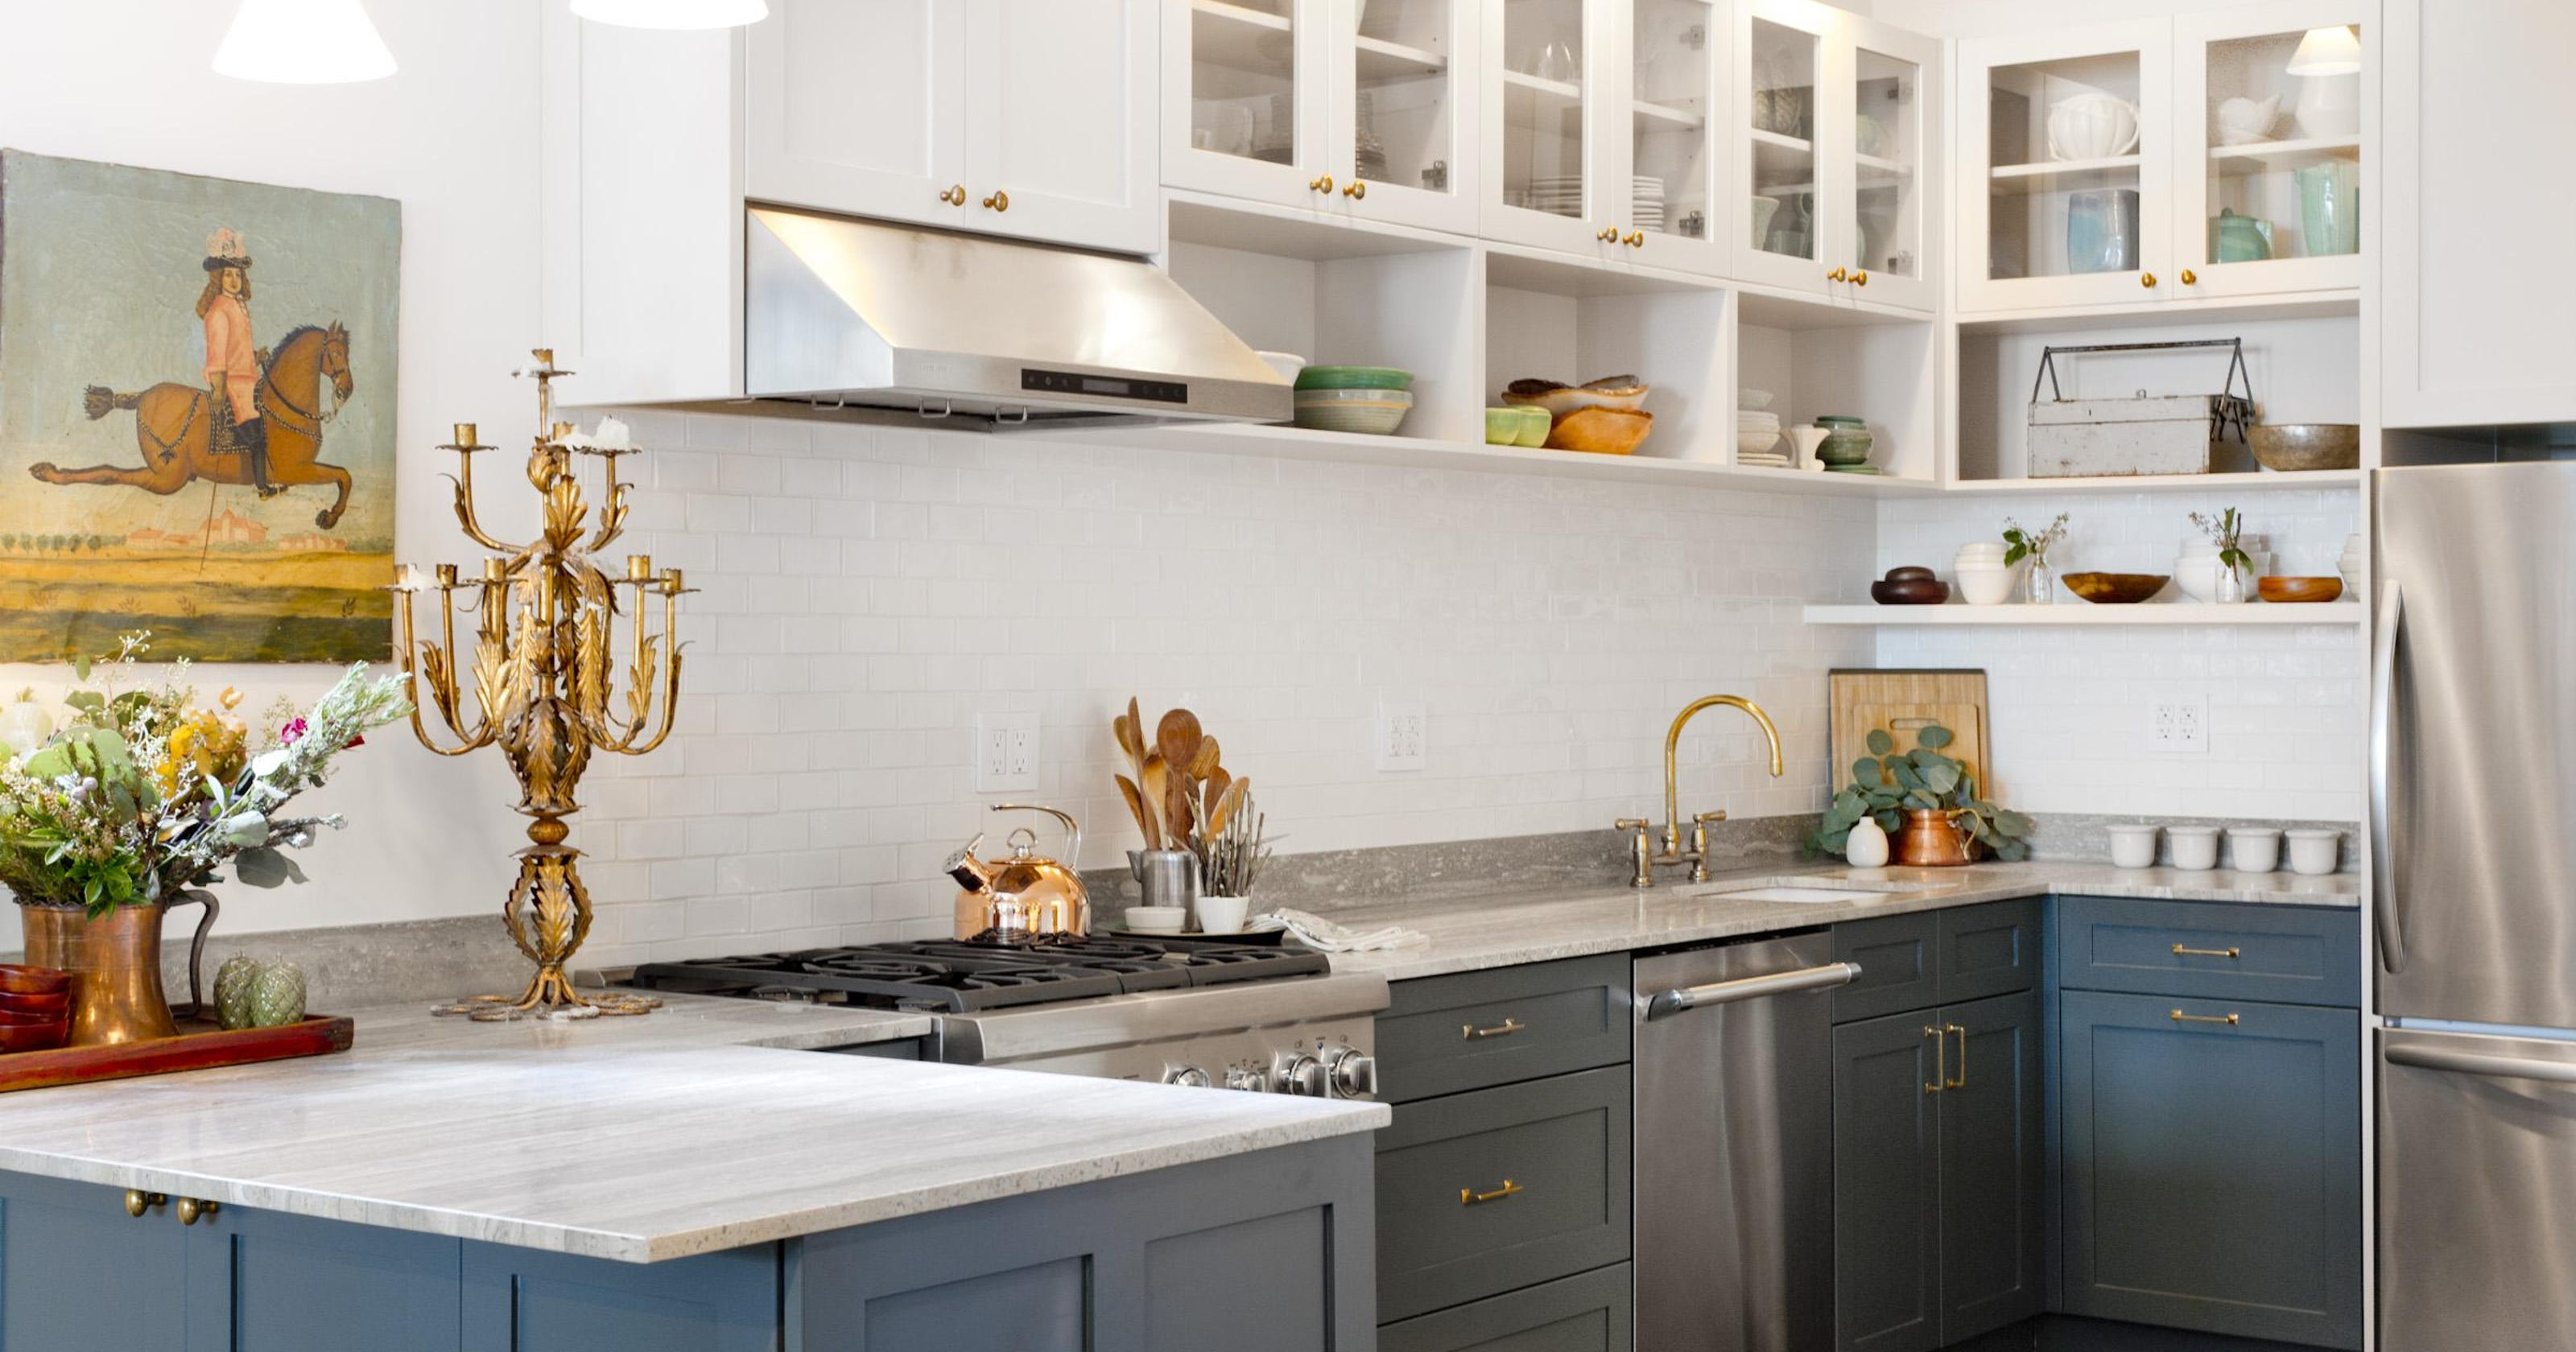 Solutions: Houzz shares what's trending in homes today on houzz home design bathrooms, houzz home design furniture, houzz home design fireplaces,